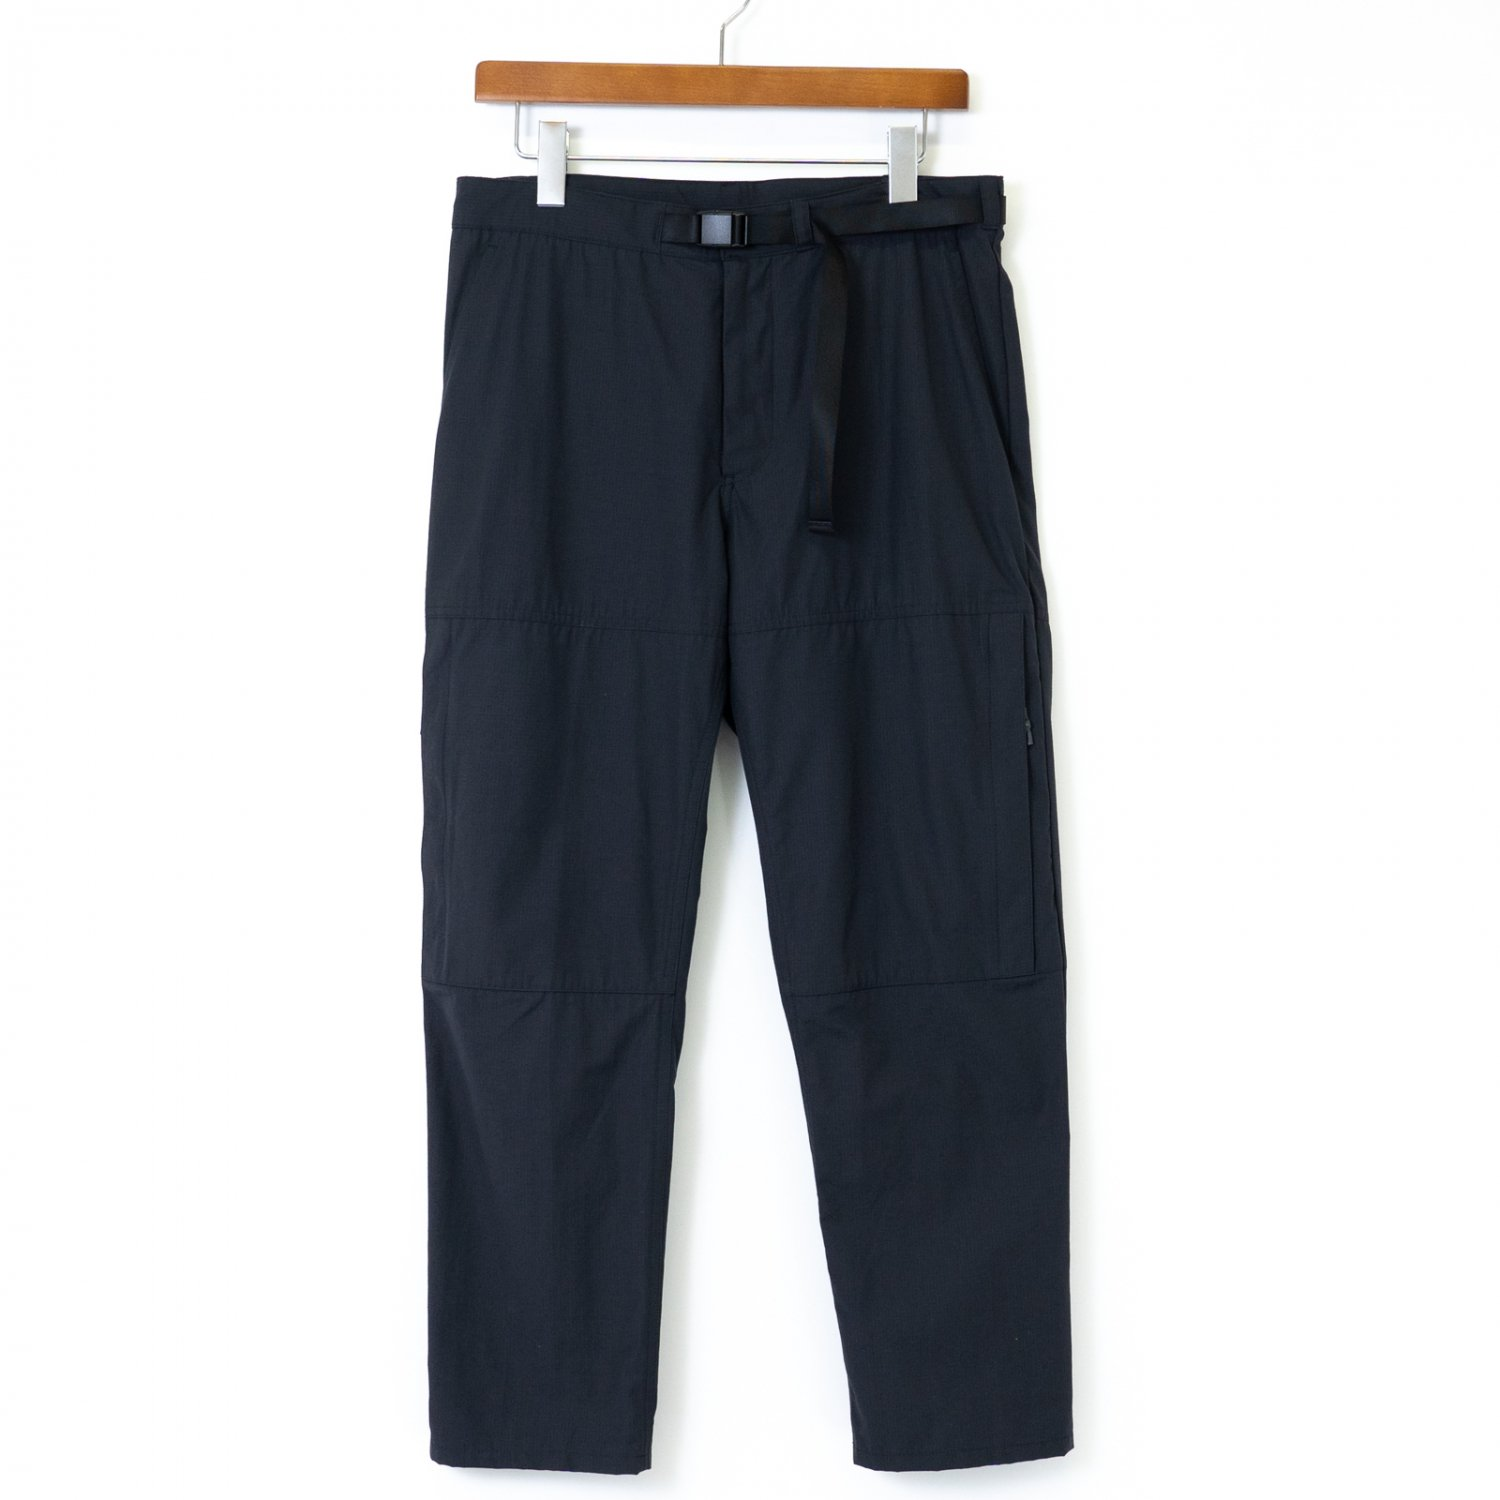 DESCENTE ddd * PARACHUTE PANTS * Black